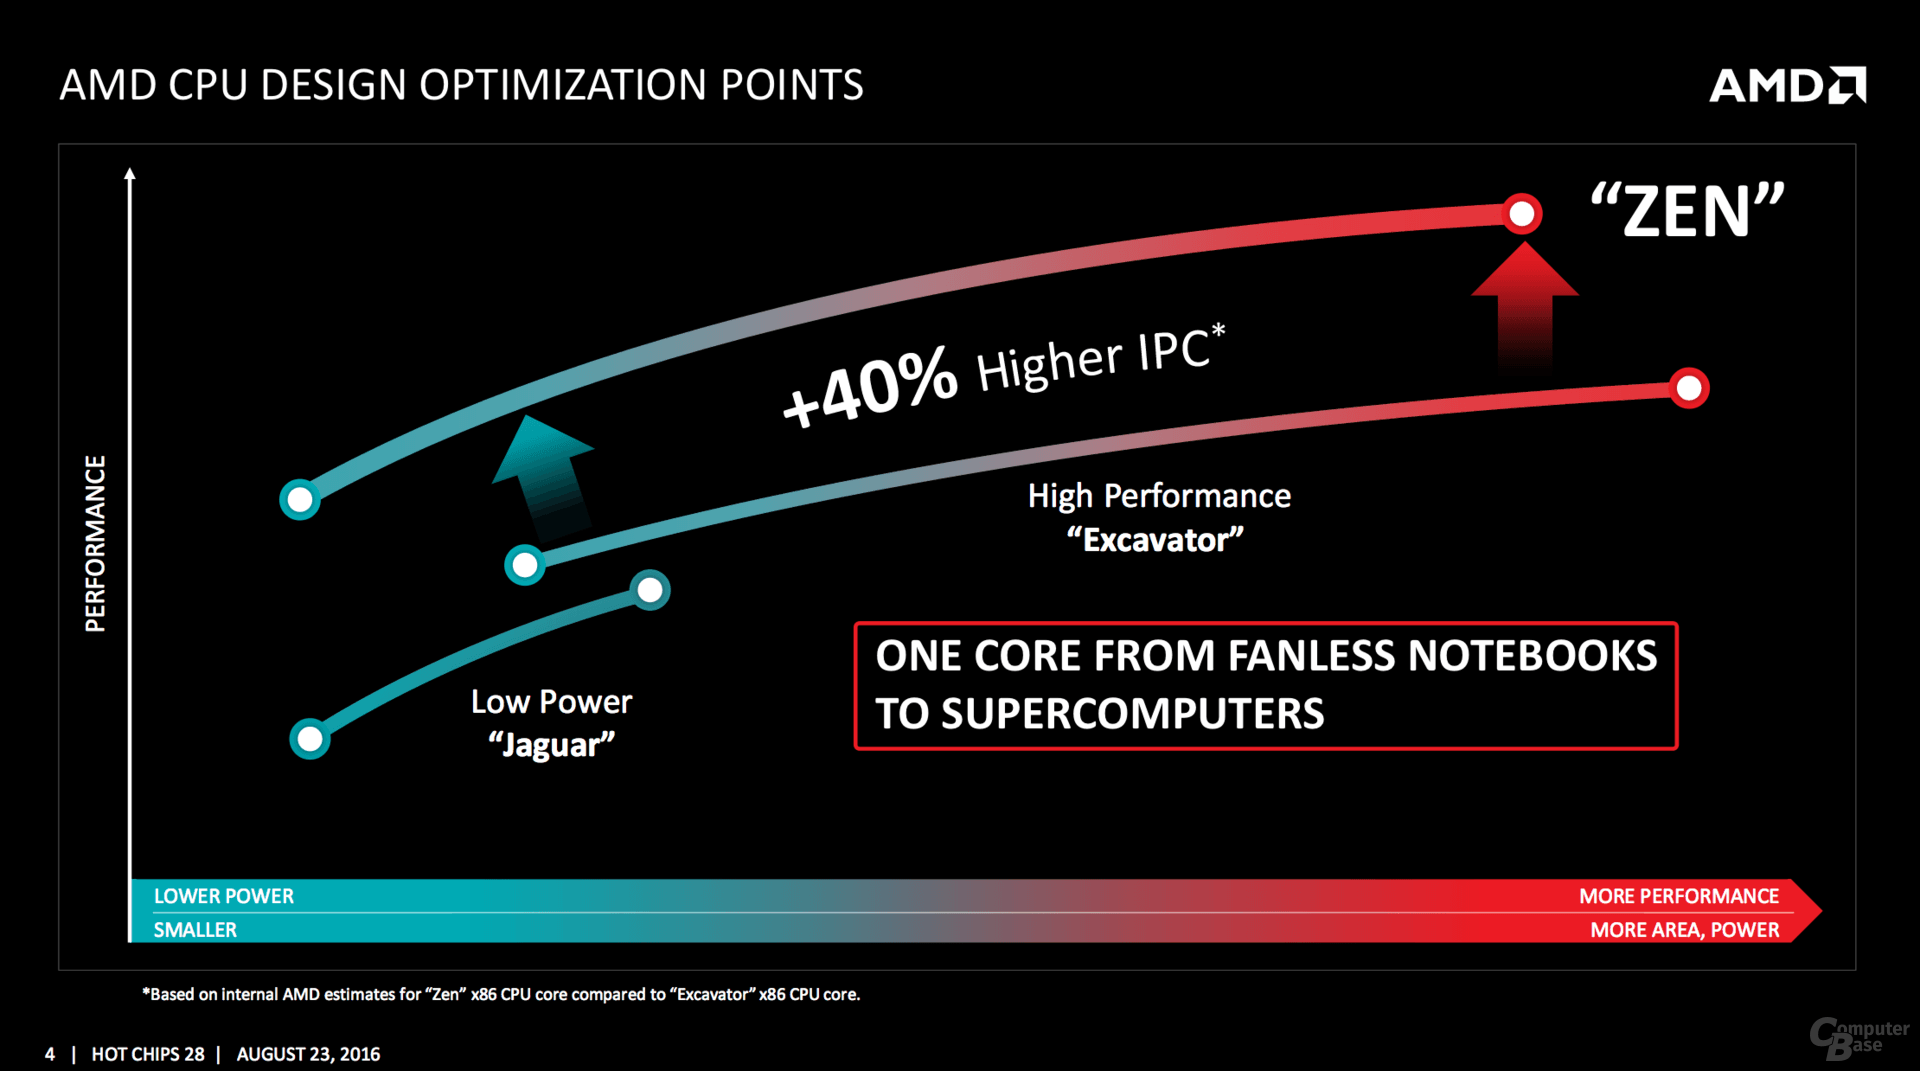 AMD-zen-IPC-power-improvements